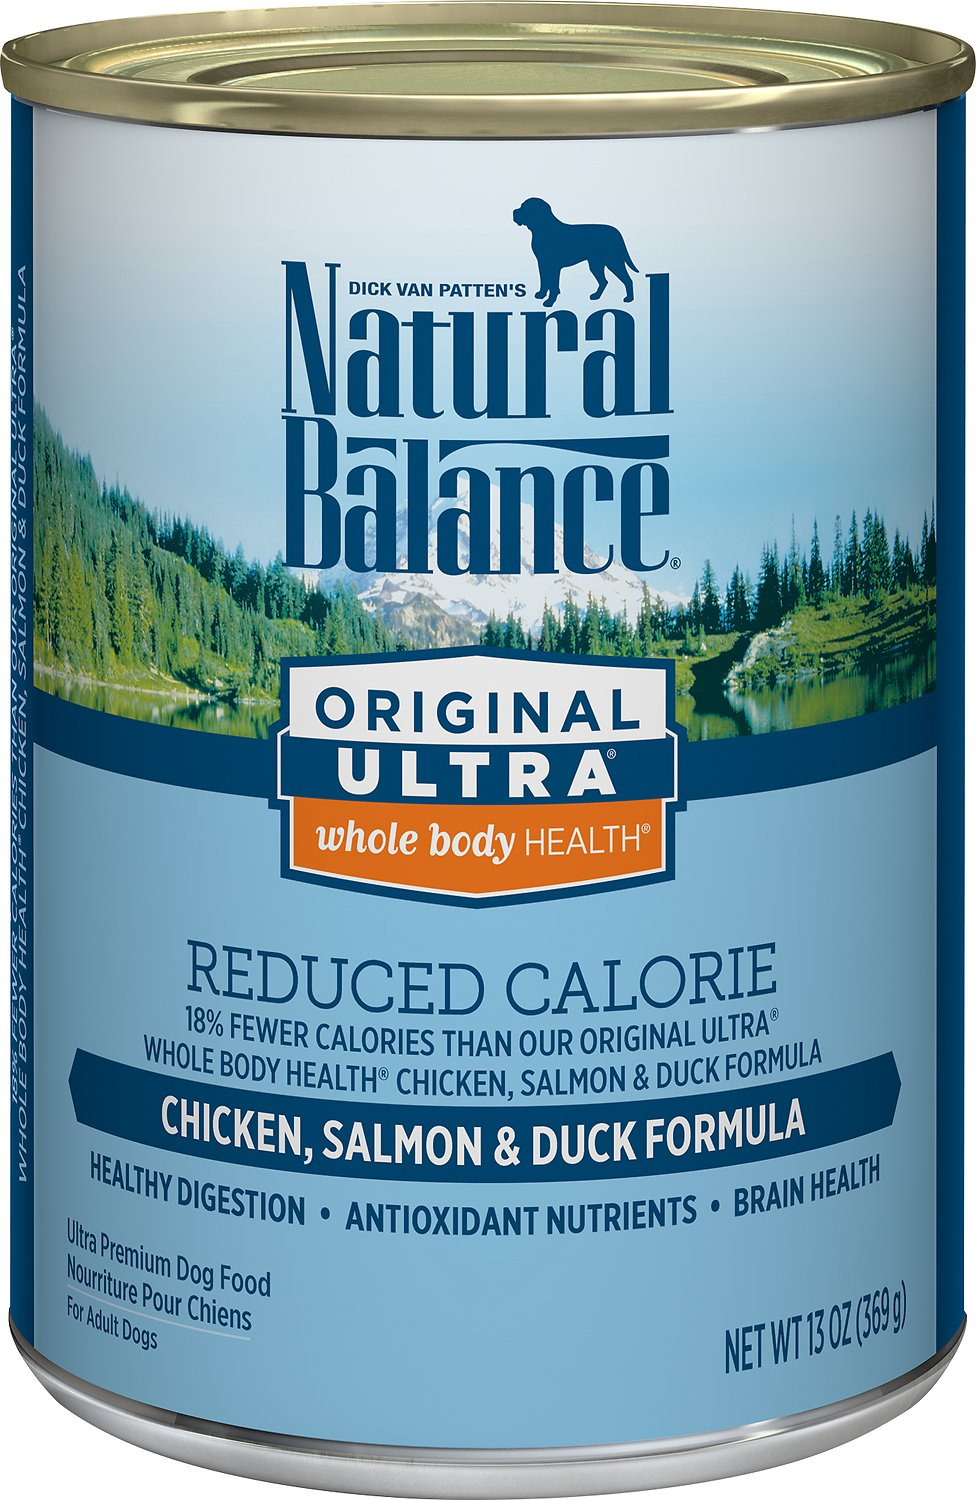 Natural Balance Original Ultra Dog Food Reviews